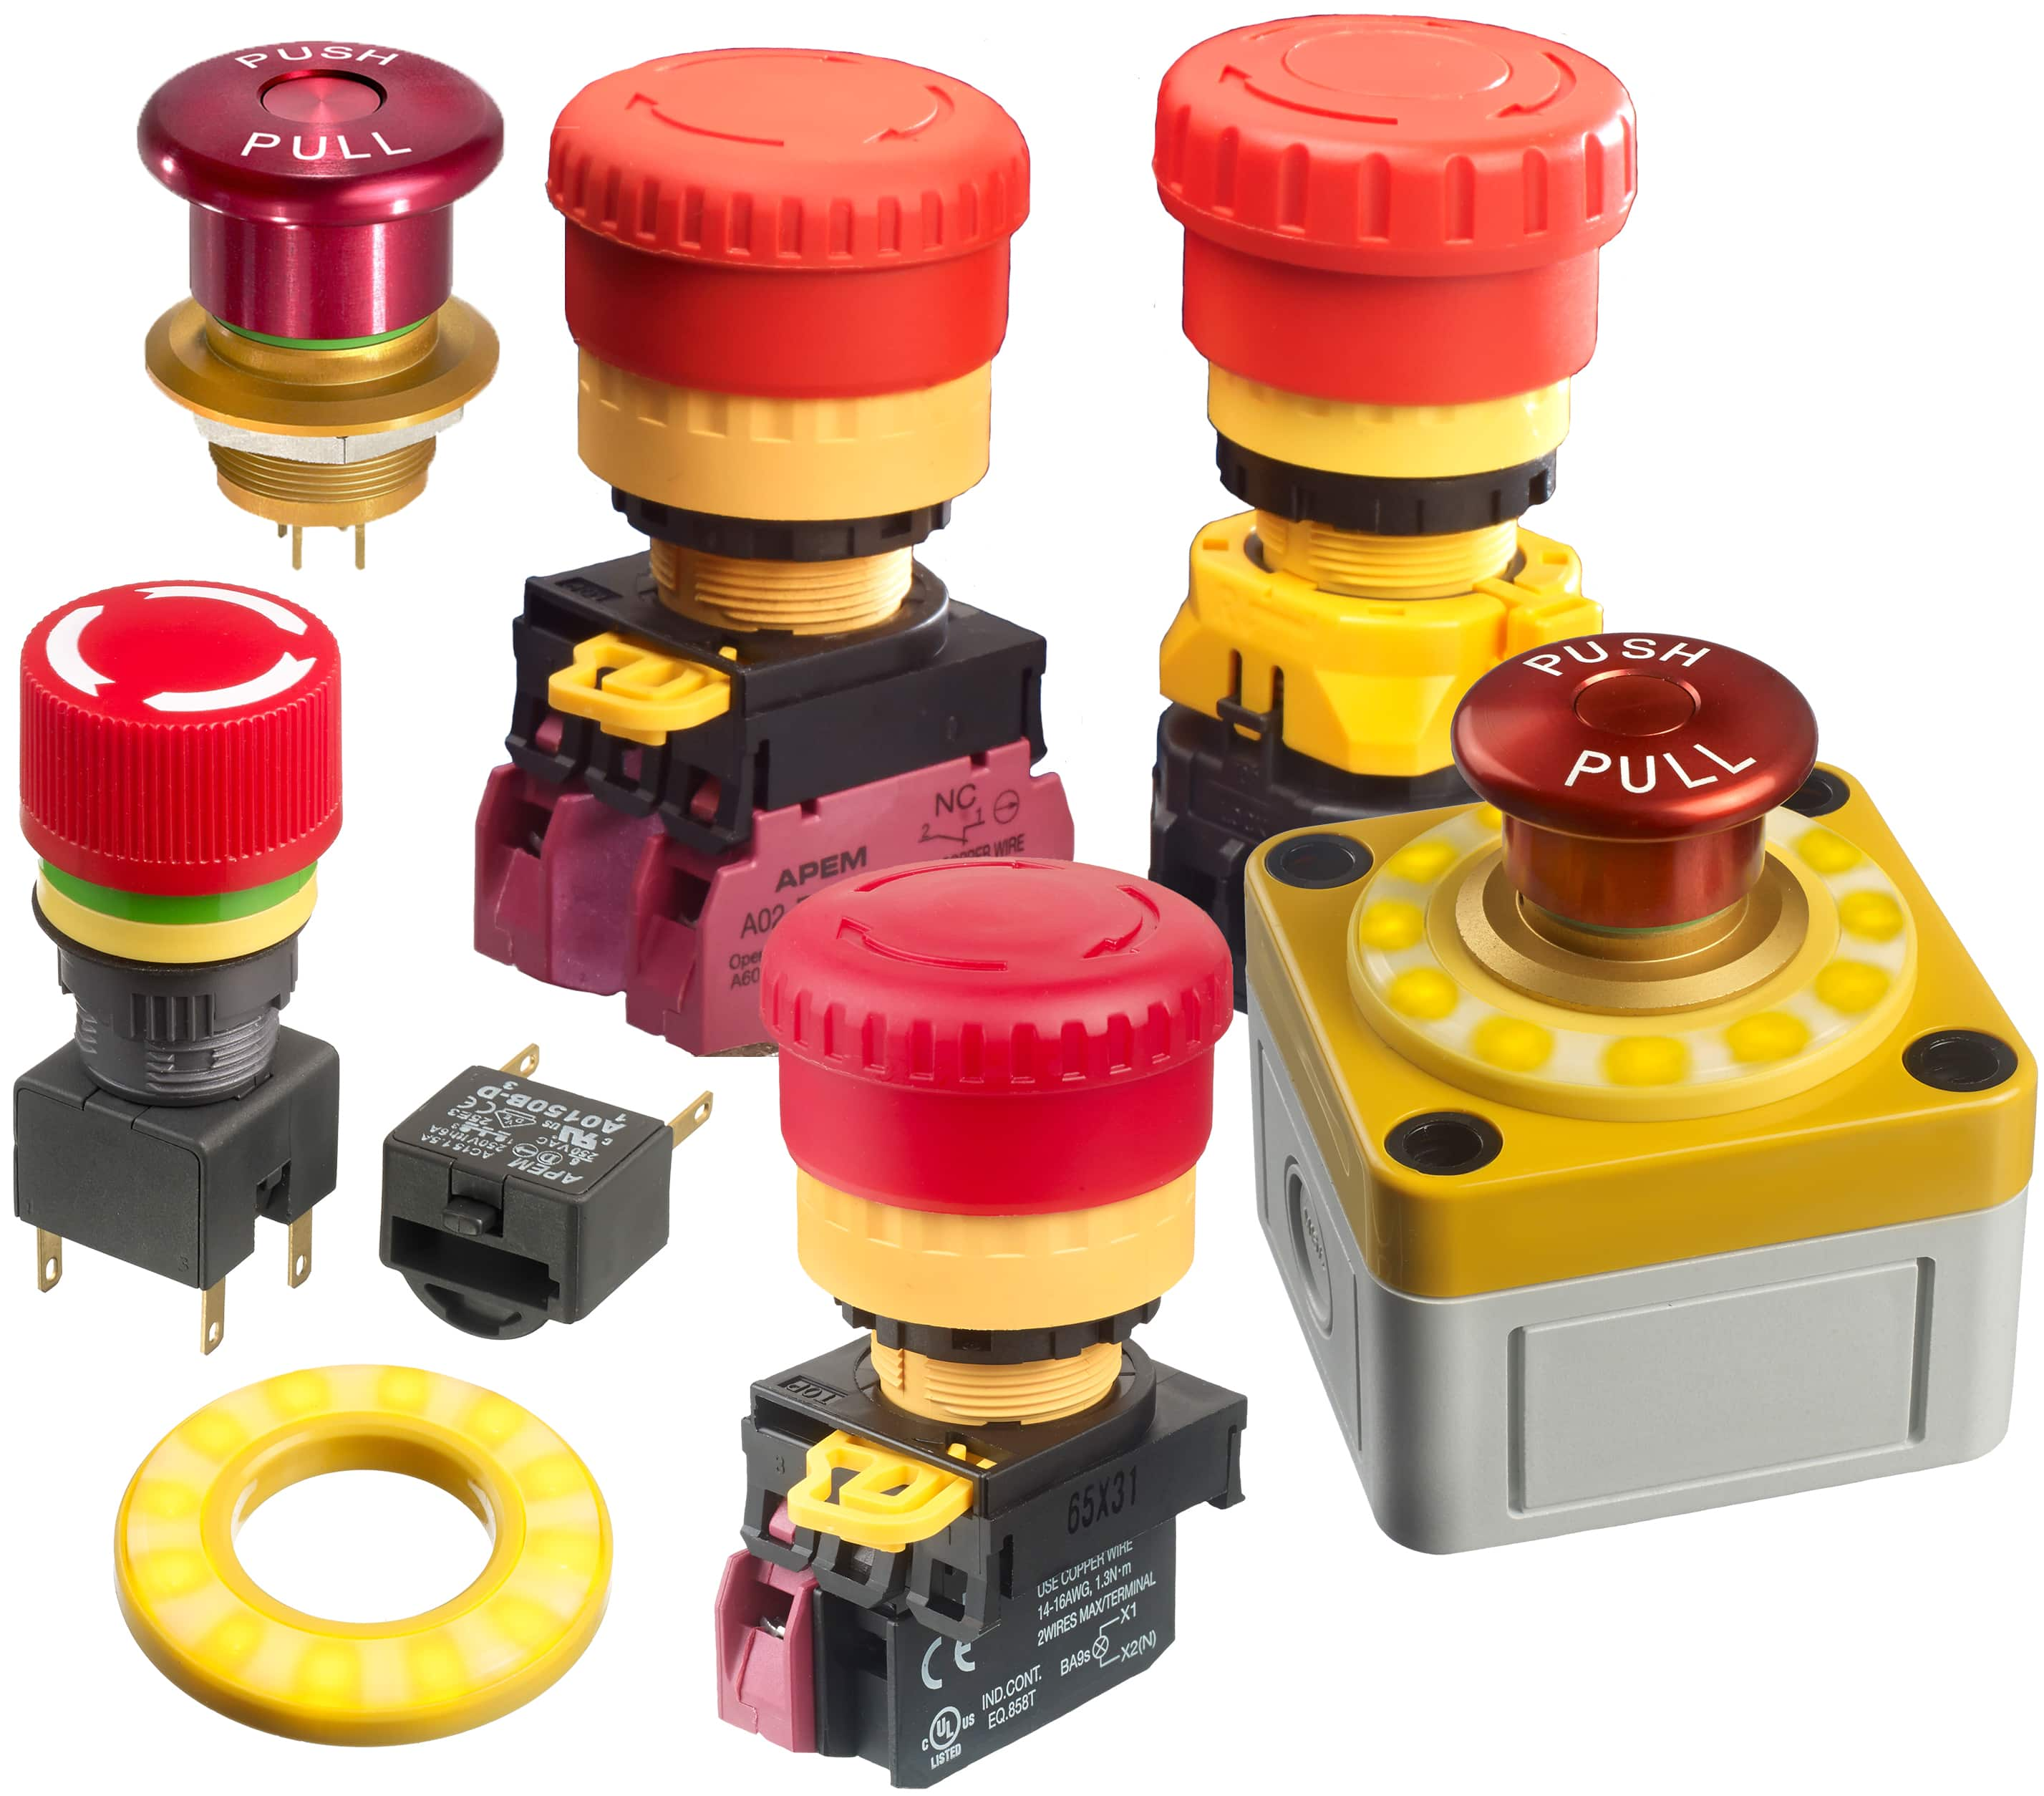 hight resolution of image of apem s emergency stop switches and accessories